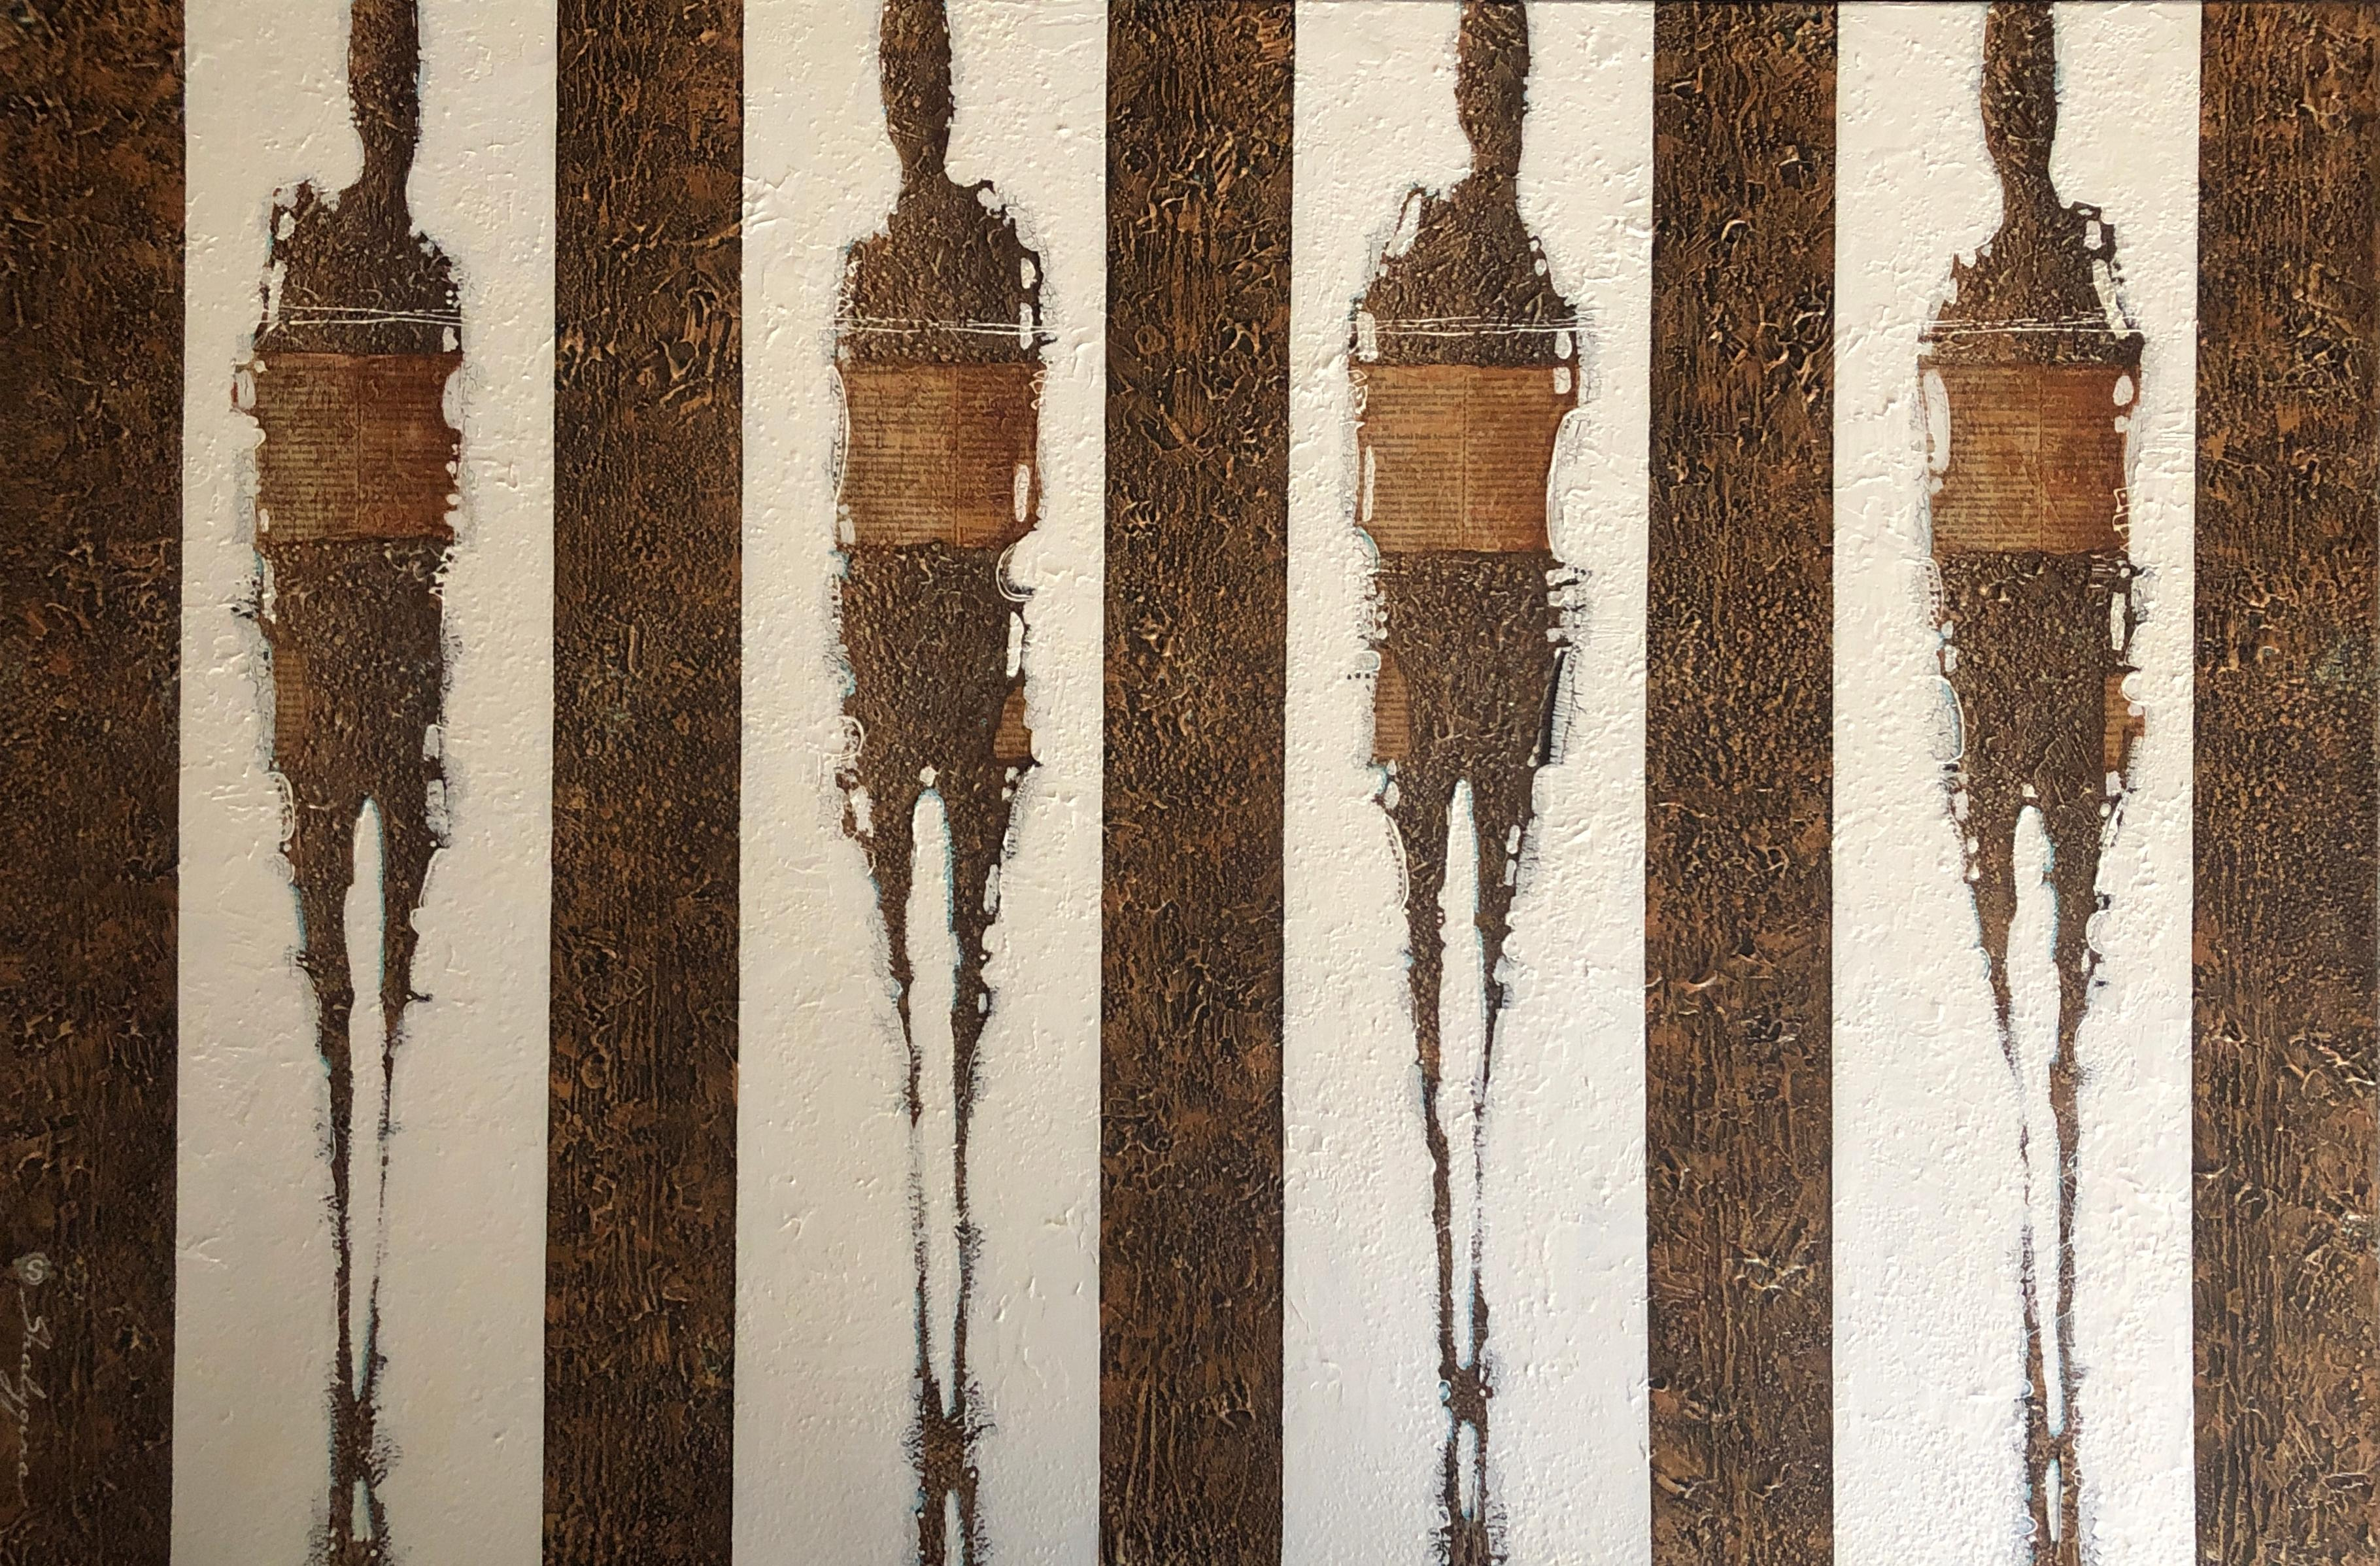 Brown White Textural Abstract Figures Large Scale Contemporary Painting 48x72